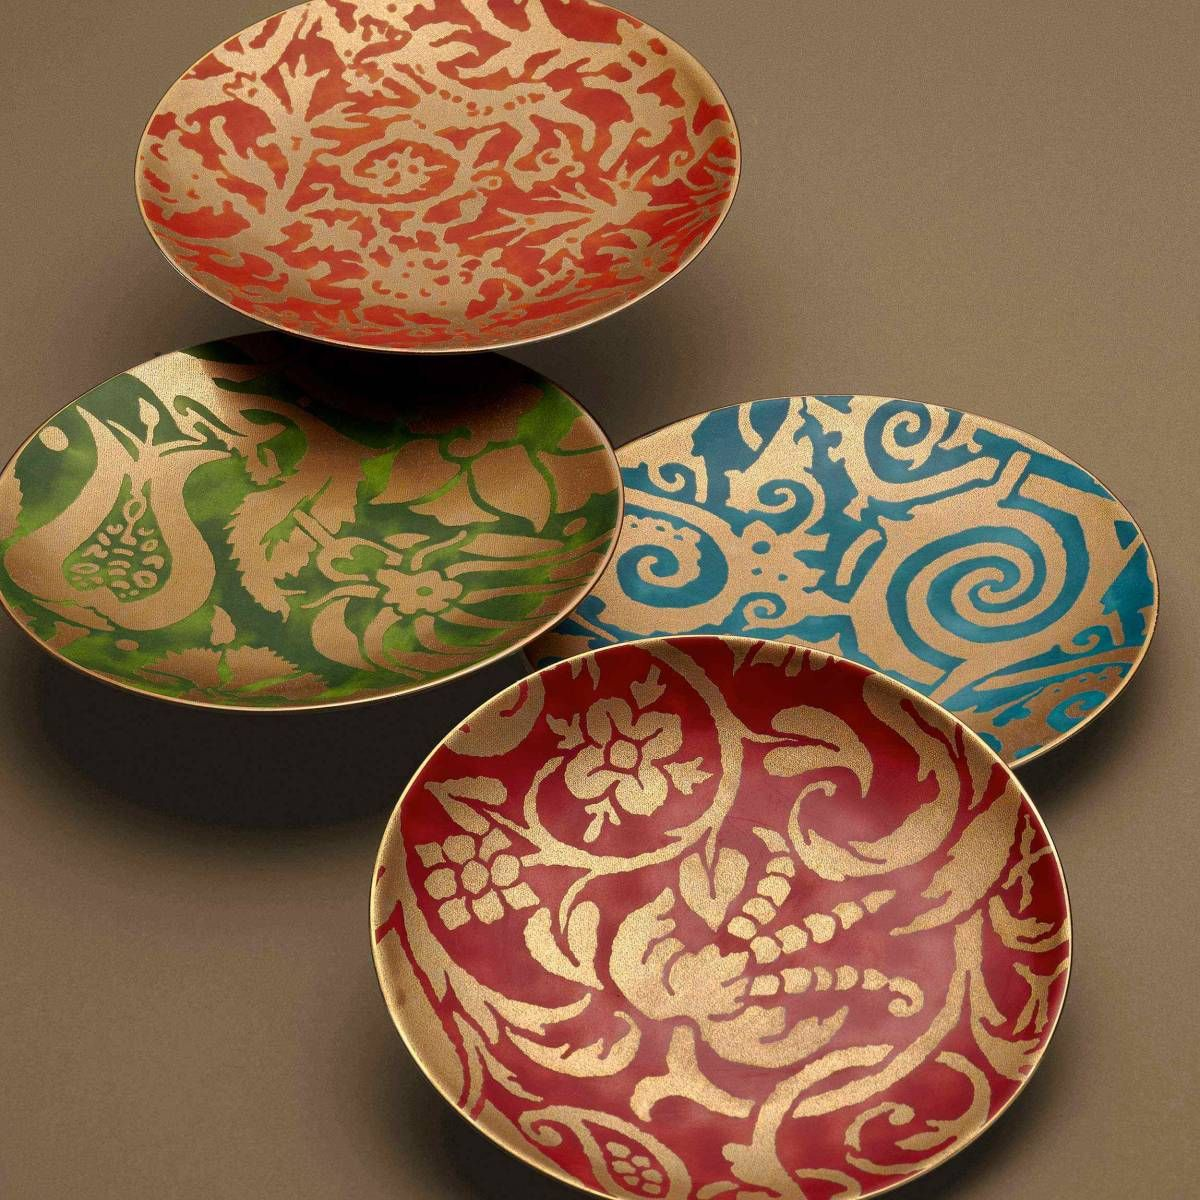 It is fun to eat off these colorful plates designed with a Maori pattern - New & It is fun to eat off these colorful plates designed with a Maori ...